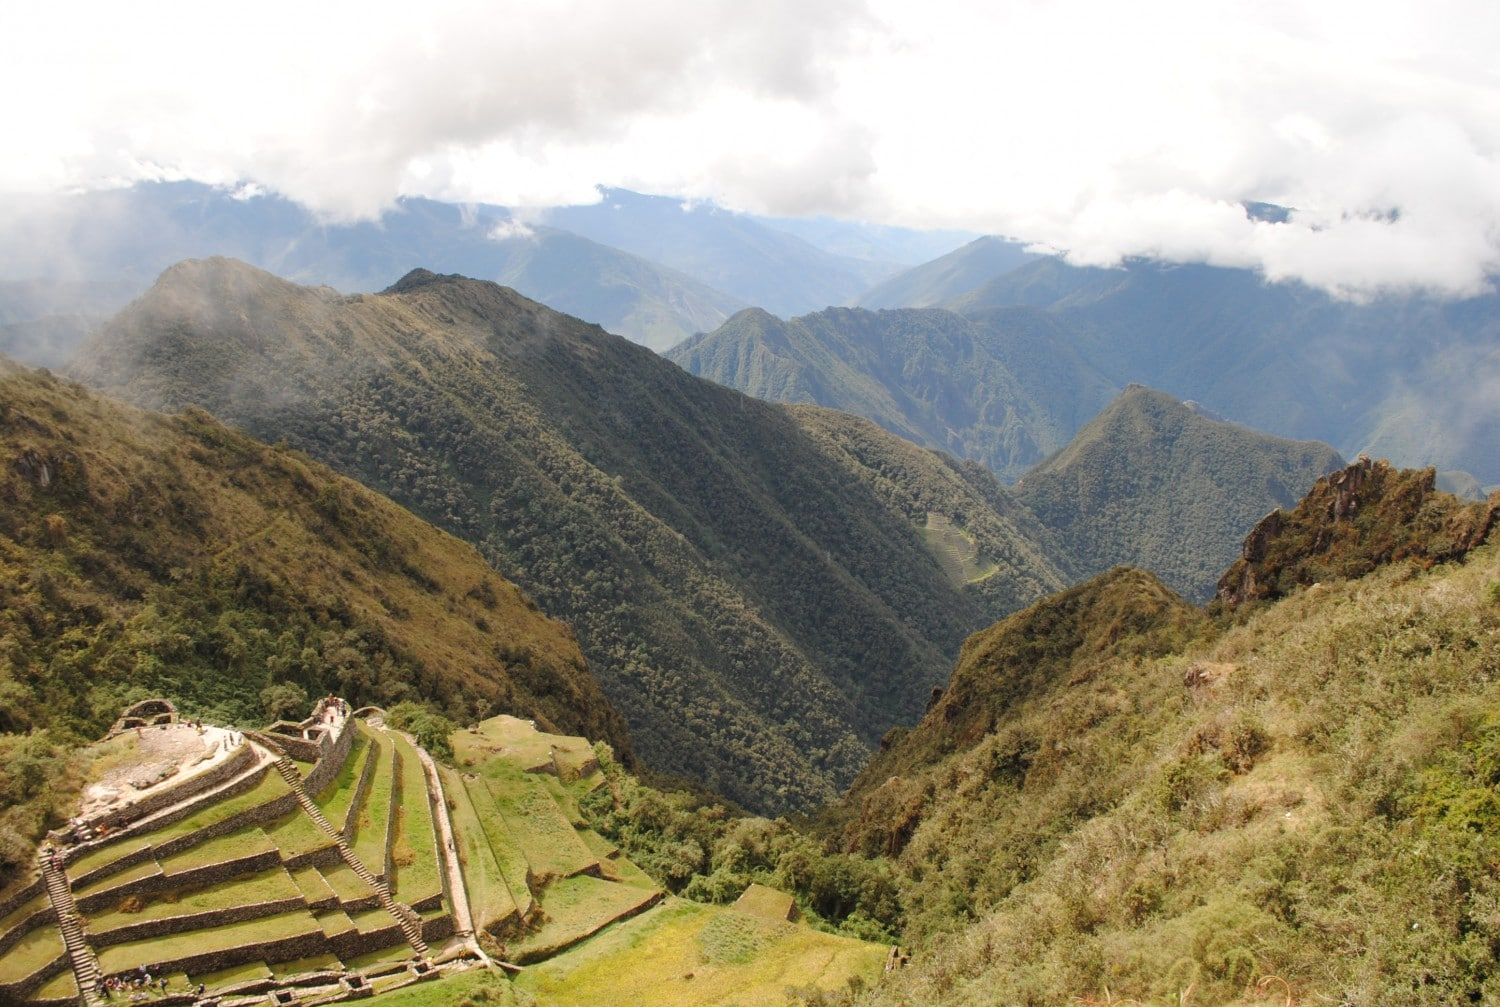 Hiking the Inca Trail - Travel Adventures Around the World